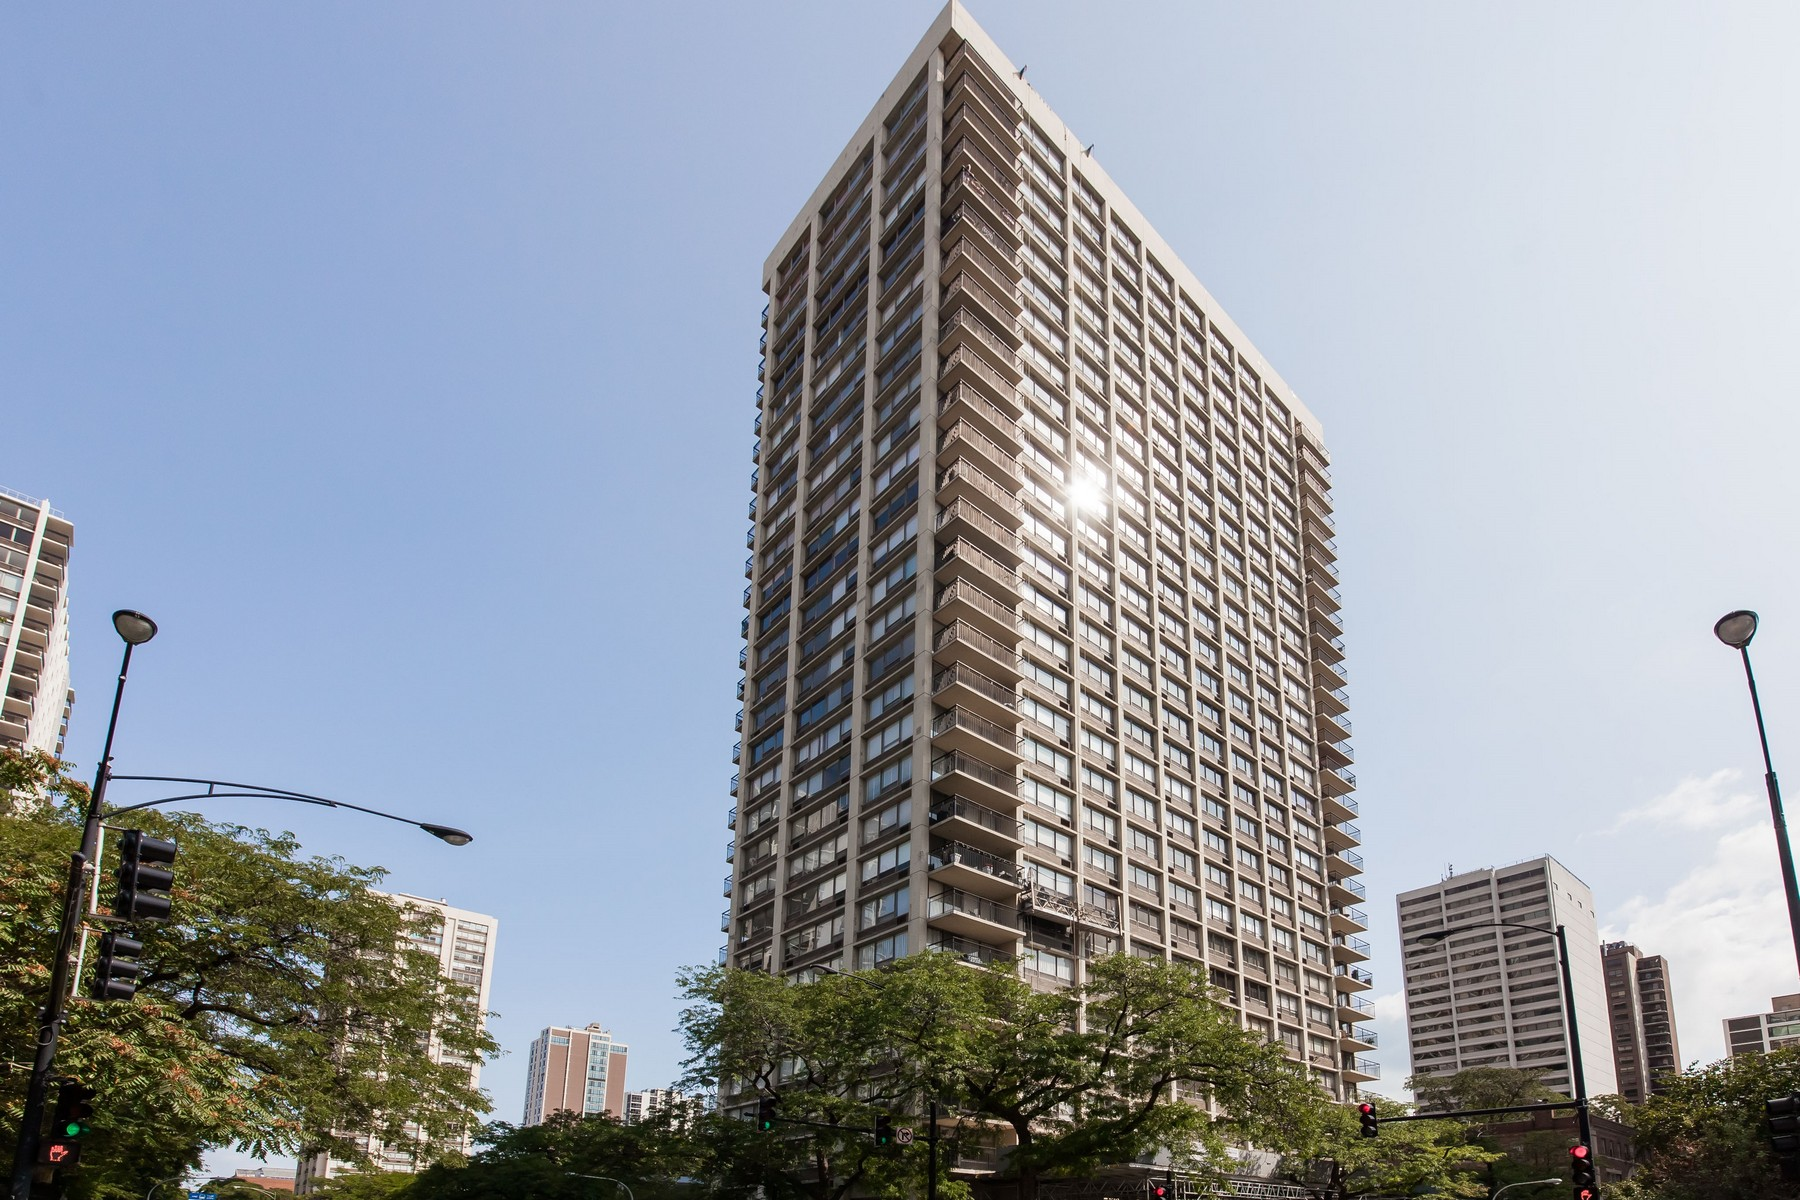 Condominium for Sale at Incredible opportunity with a Gold Coast location 88 W Schiller Street Unit 405L, Chicago, Illinois, 60610 United States